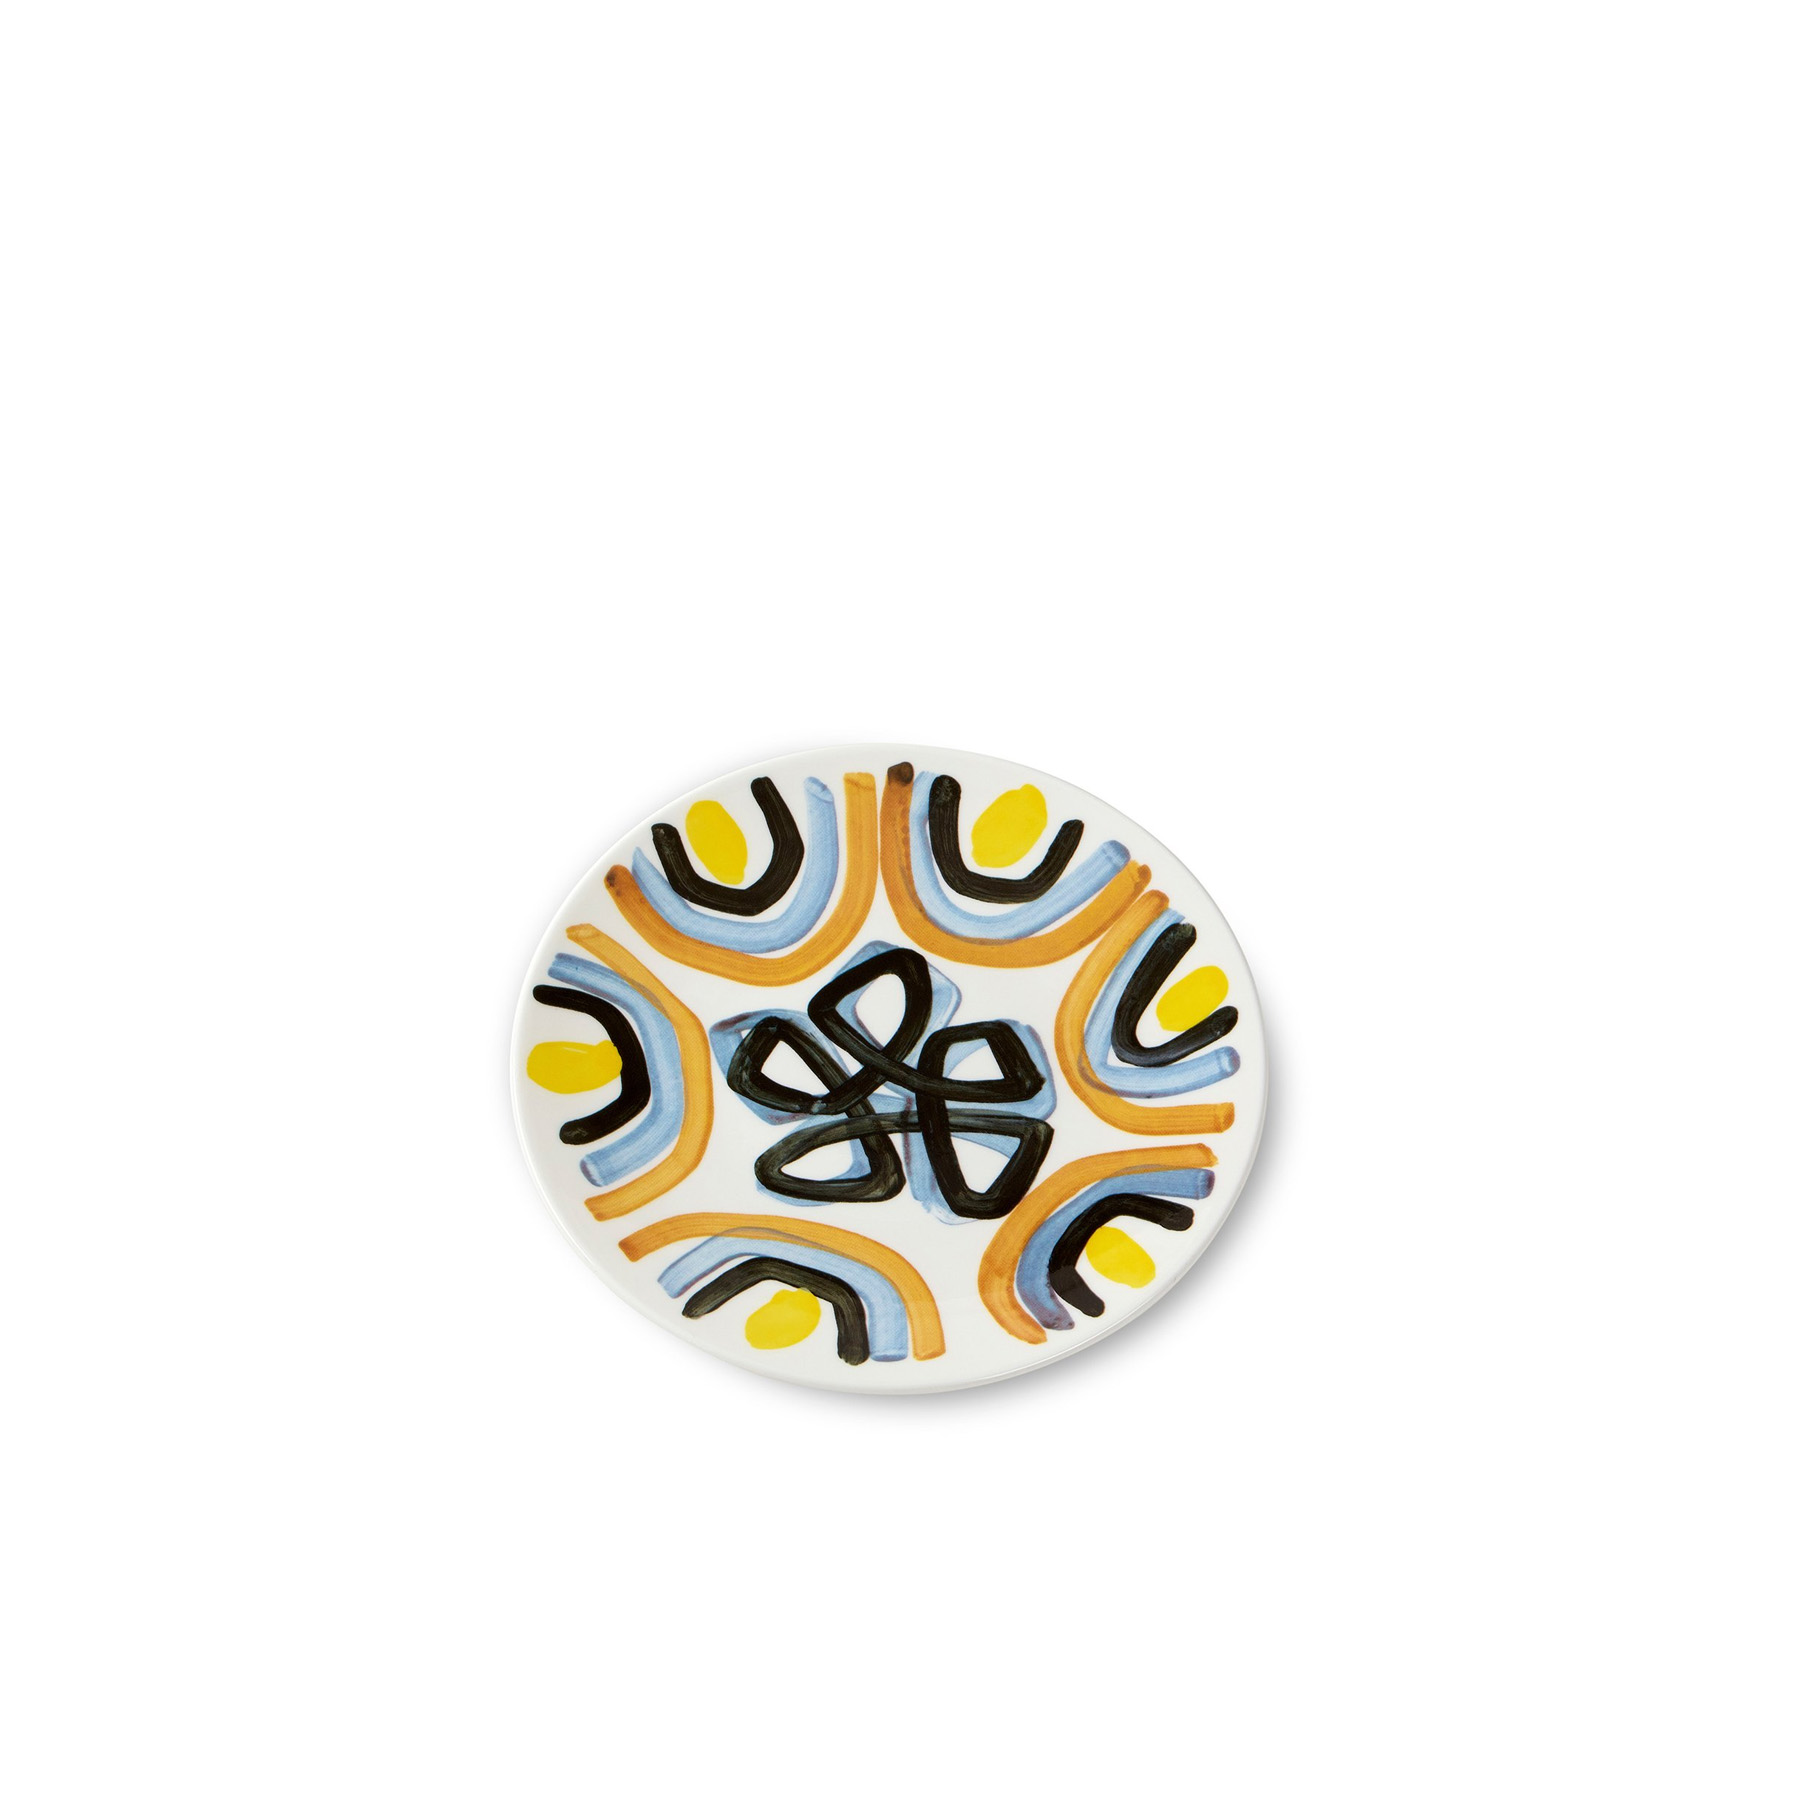 Yellow Flower Salad Plate - Peter Pilotto's vision of womenswear embraces both new and classic perspectives on elegance. Otherworldly prints combine with soft sculptural shapes to form the handwriting of the design duo. The fine bone china table ware collection celebrates their aesthetic with the wonderful use of pattern and colour.